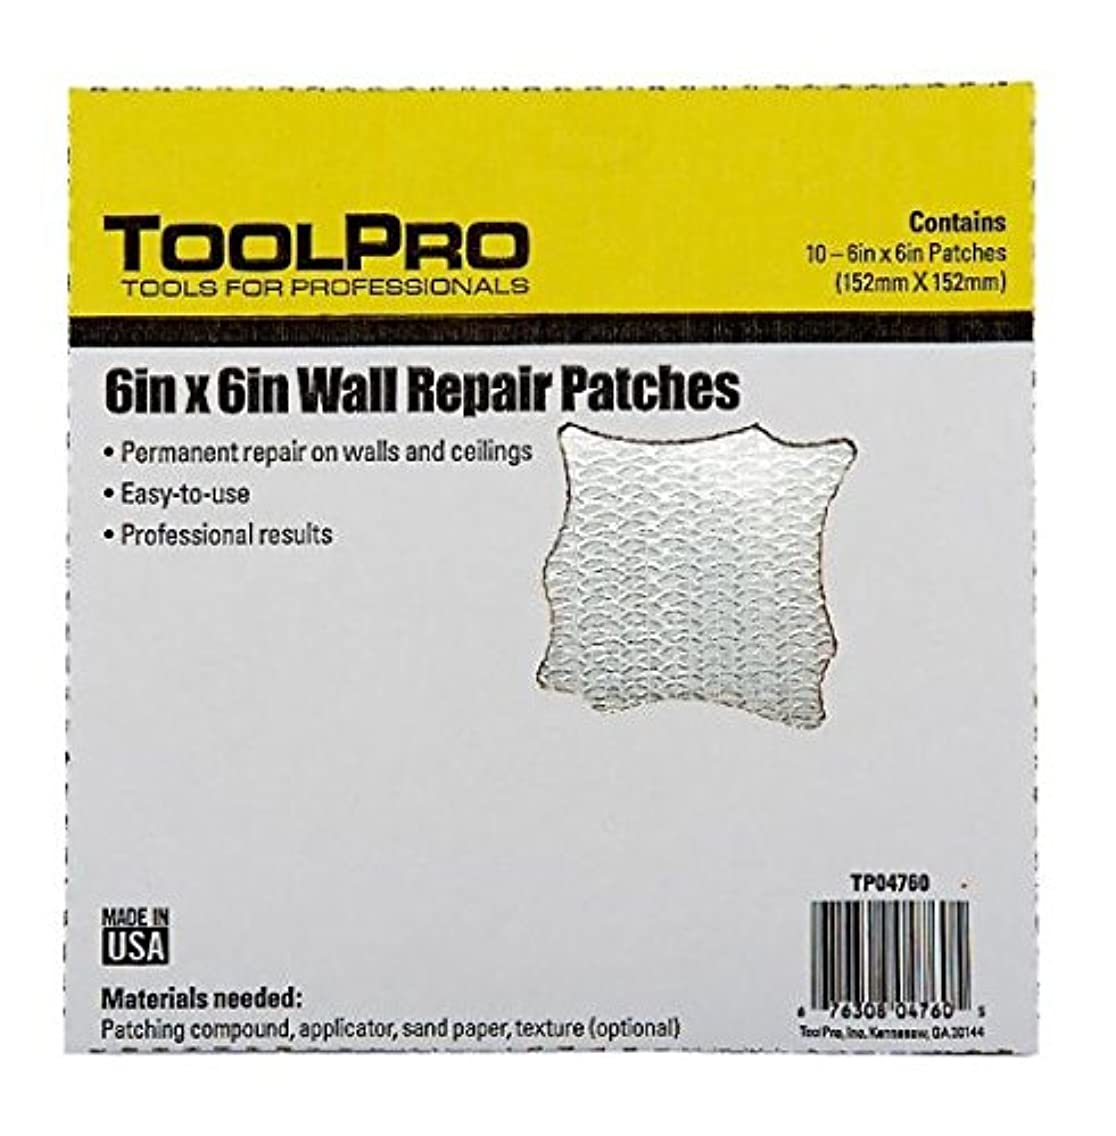 TOOLPRO 6 x 6 Wall Repair Patches, 10 Pack